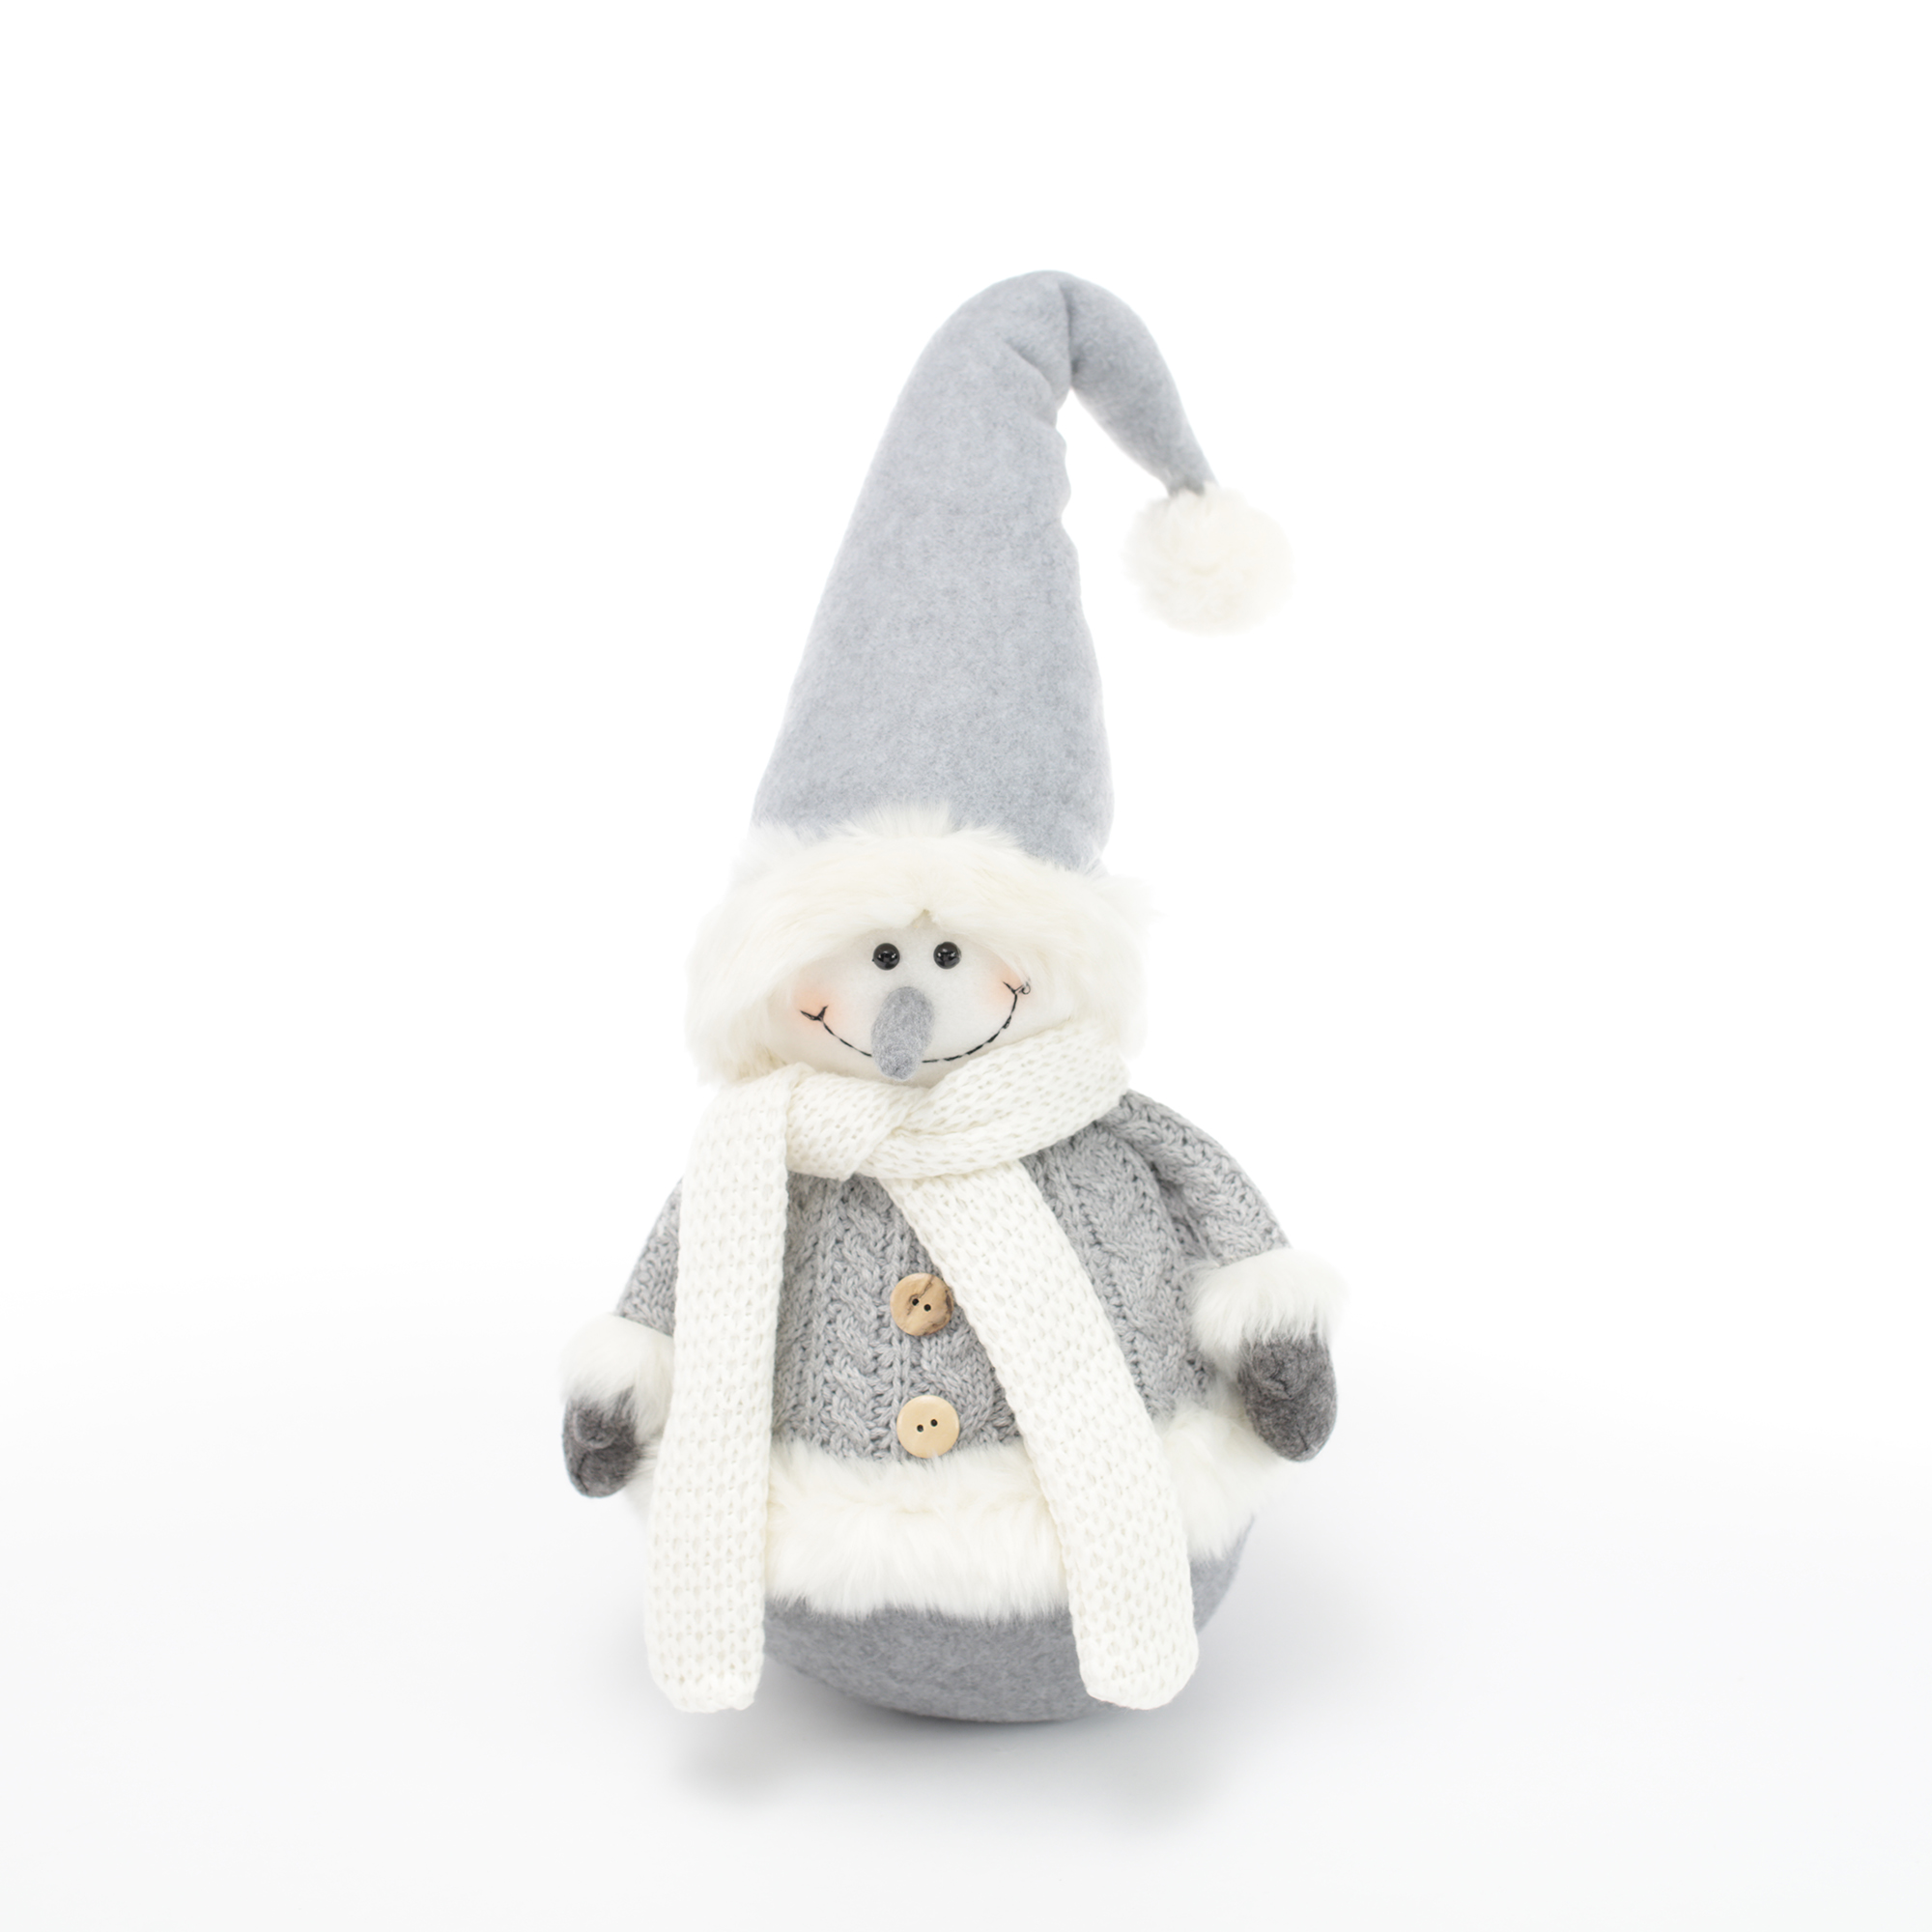 Chilly Snowman – Small